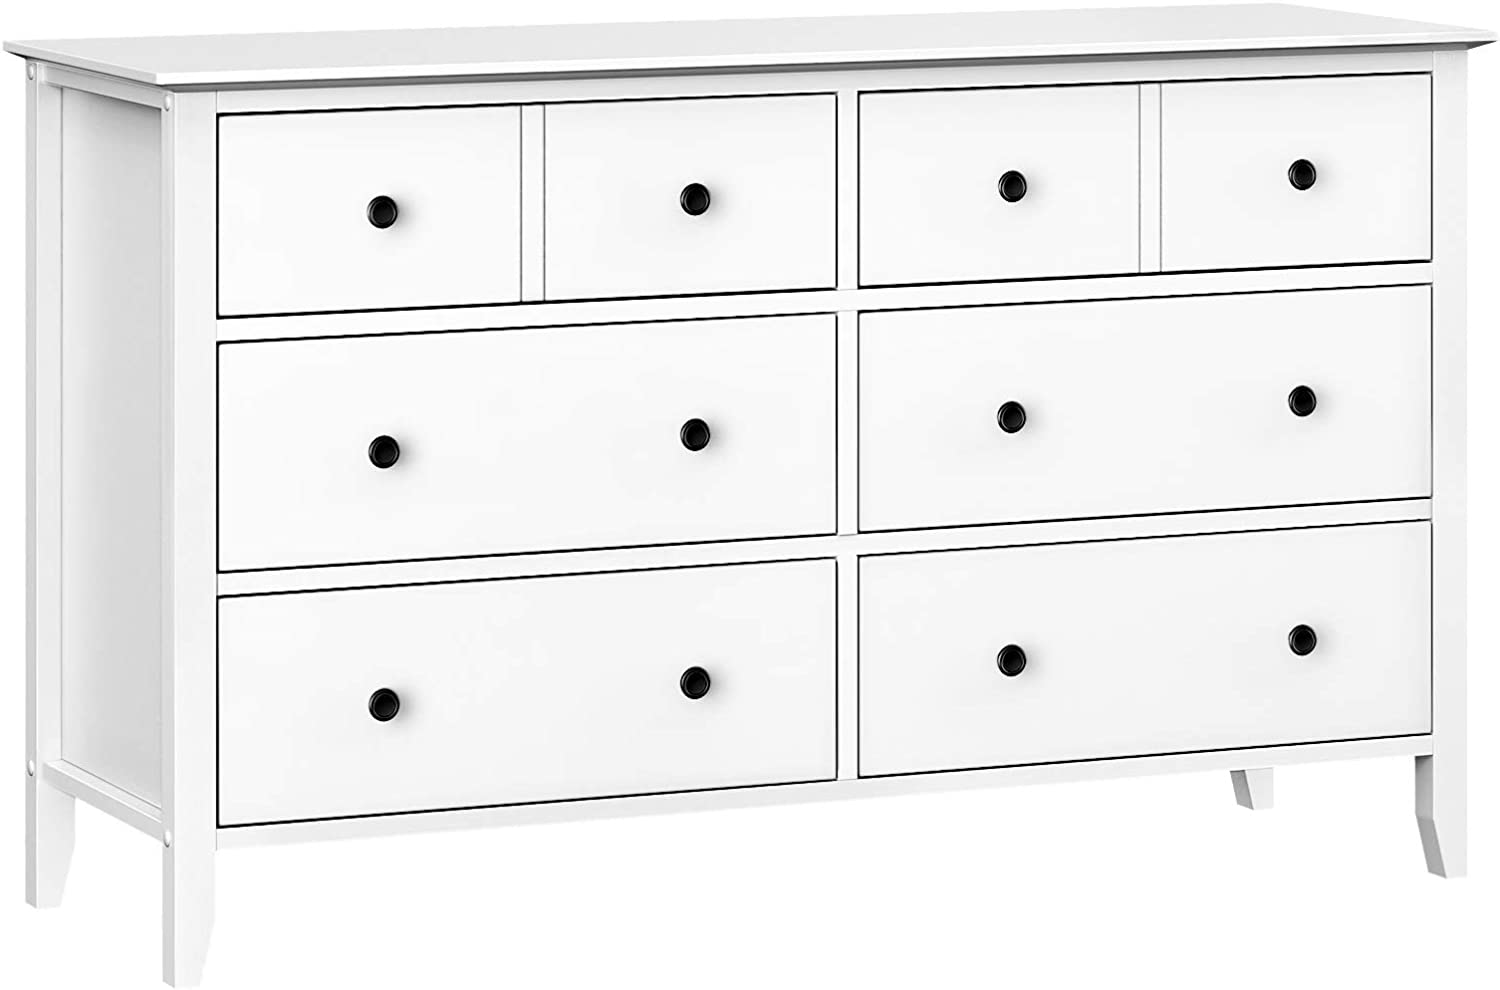 VASAGLE 6-Drawer Dresser, Chest of Drawers with Solid Wood Frame, Storage Unit for the Bedroom, Living Room, with Antique-Style Handles, Easy Installation, White